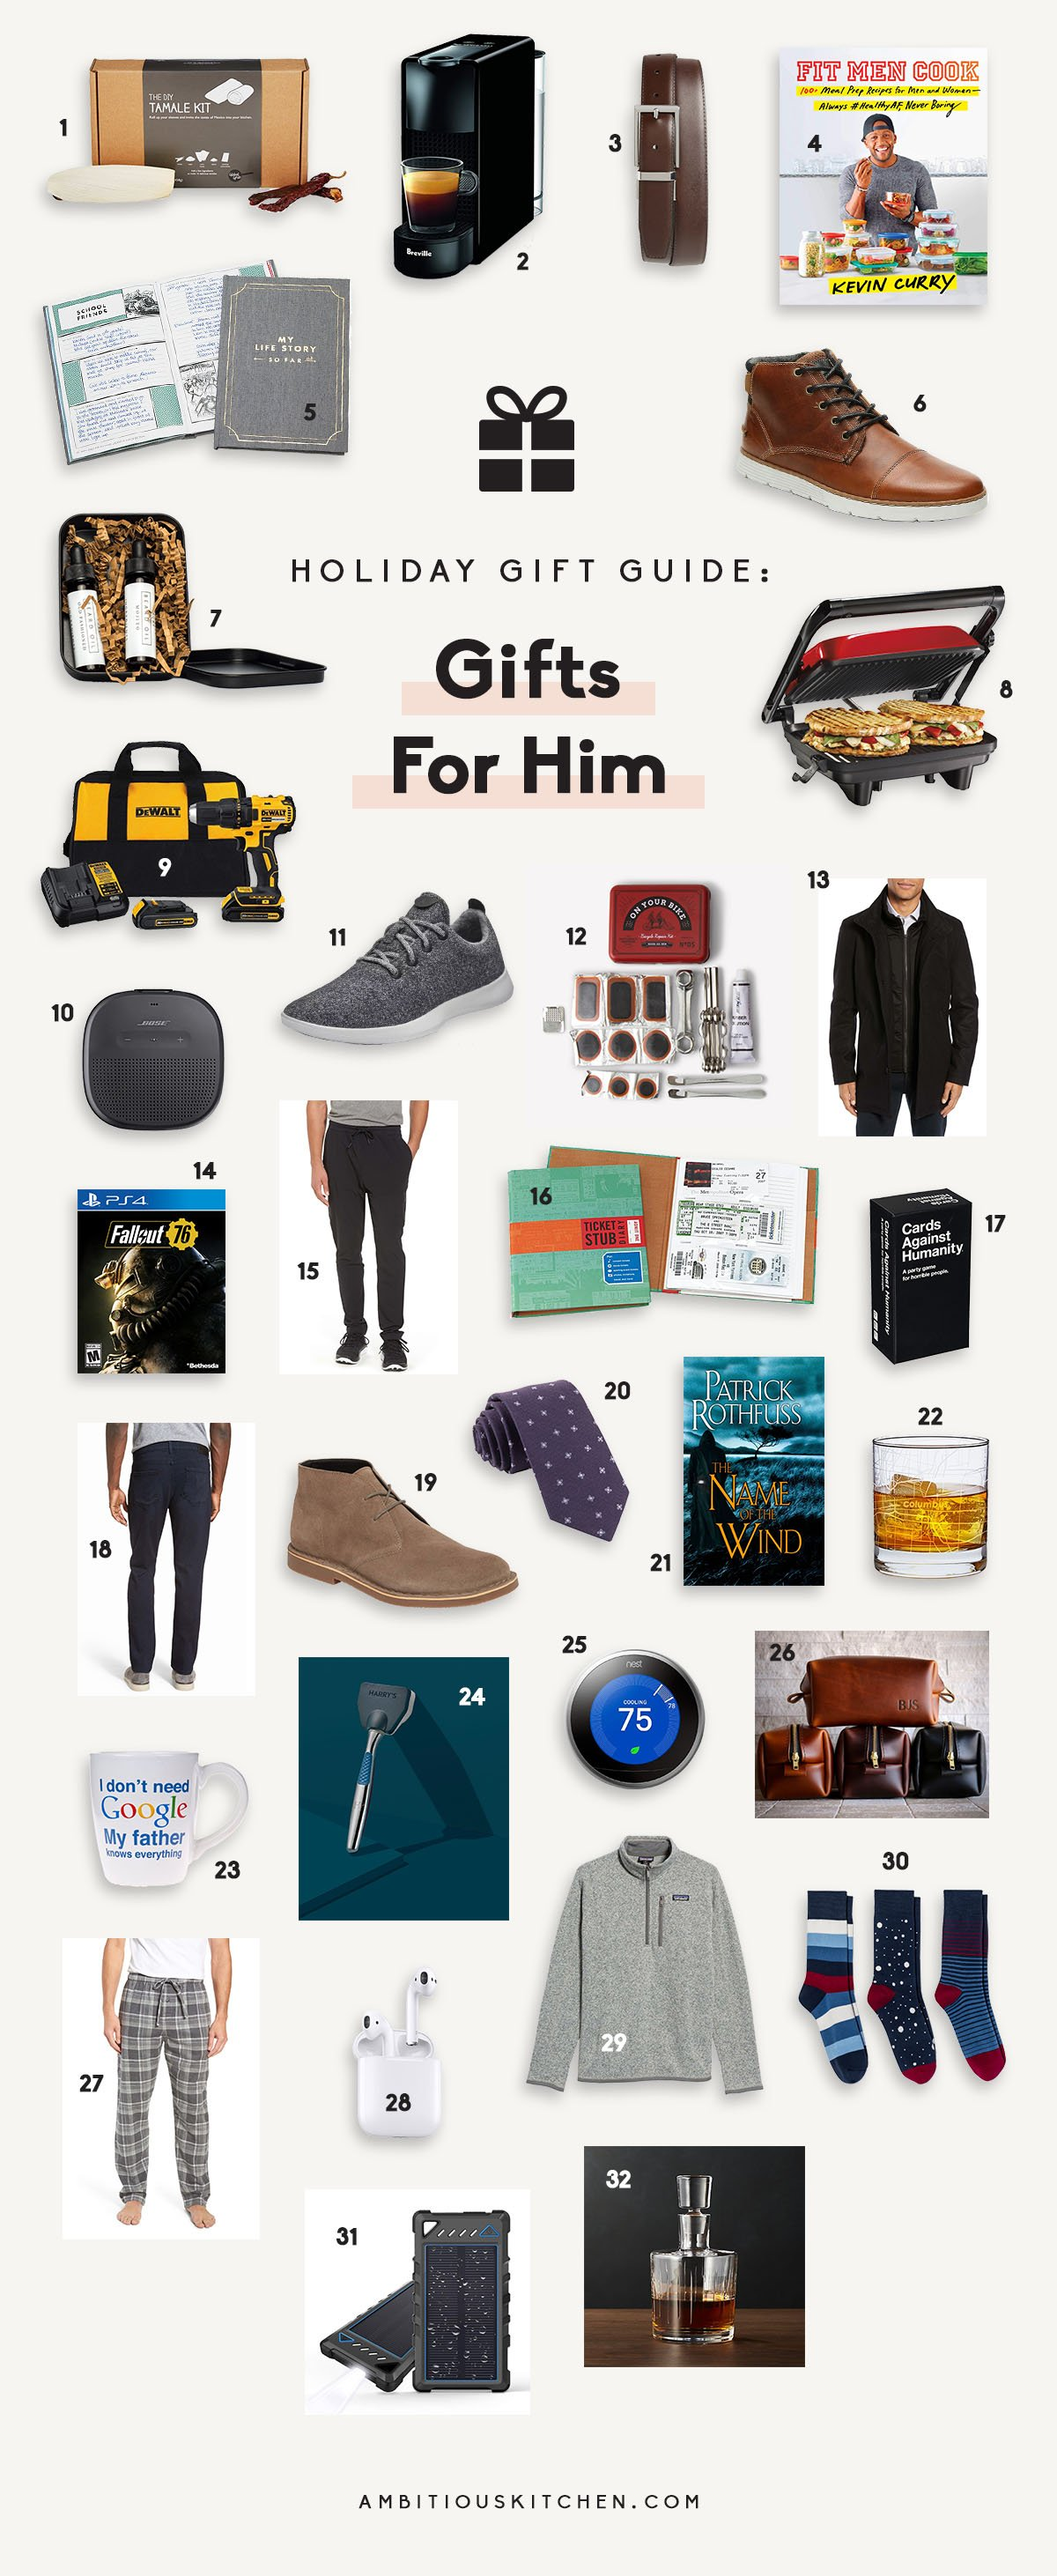 32 fun, amazing gift ideas for the men in your life! Whether you're shopping for your husband, brother, boyfriend, dad, or best friend, you'll find the perfect ideas in this guide. From grooming kits to video games and everything in between.